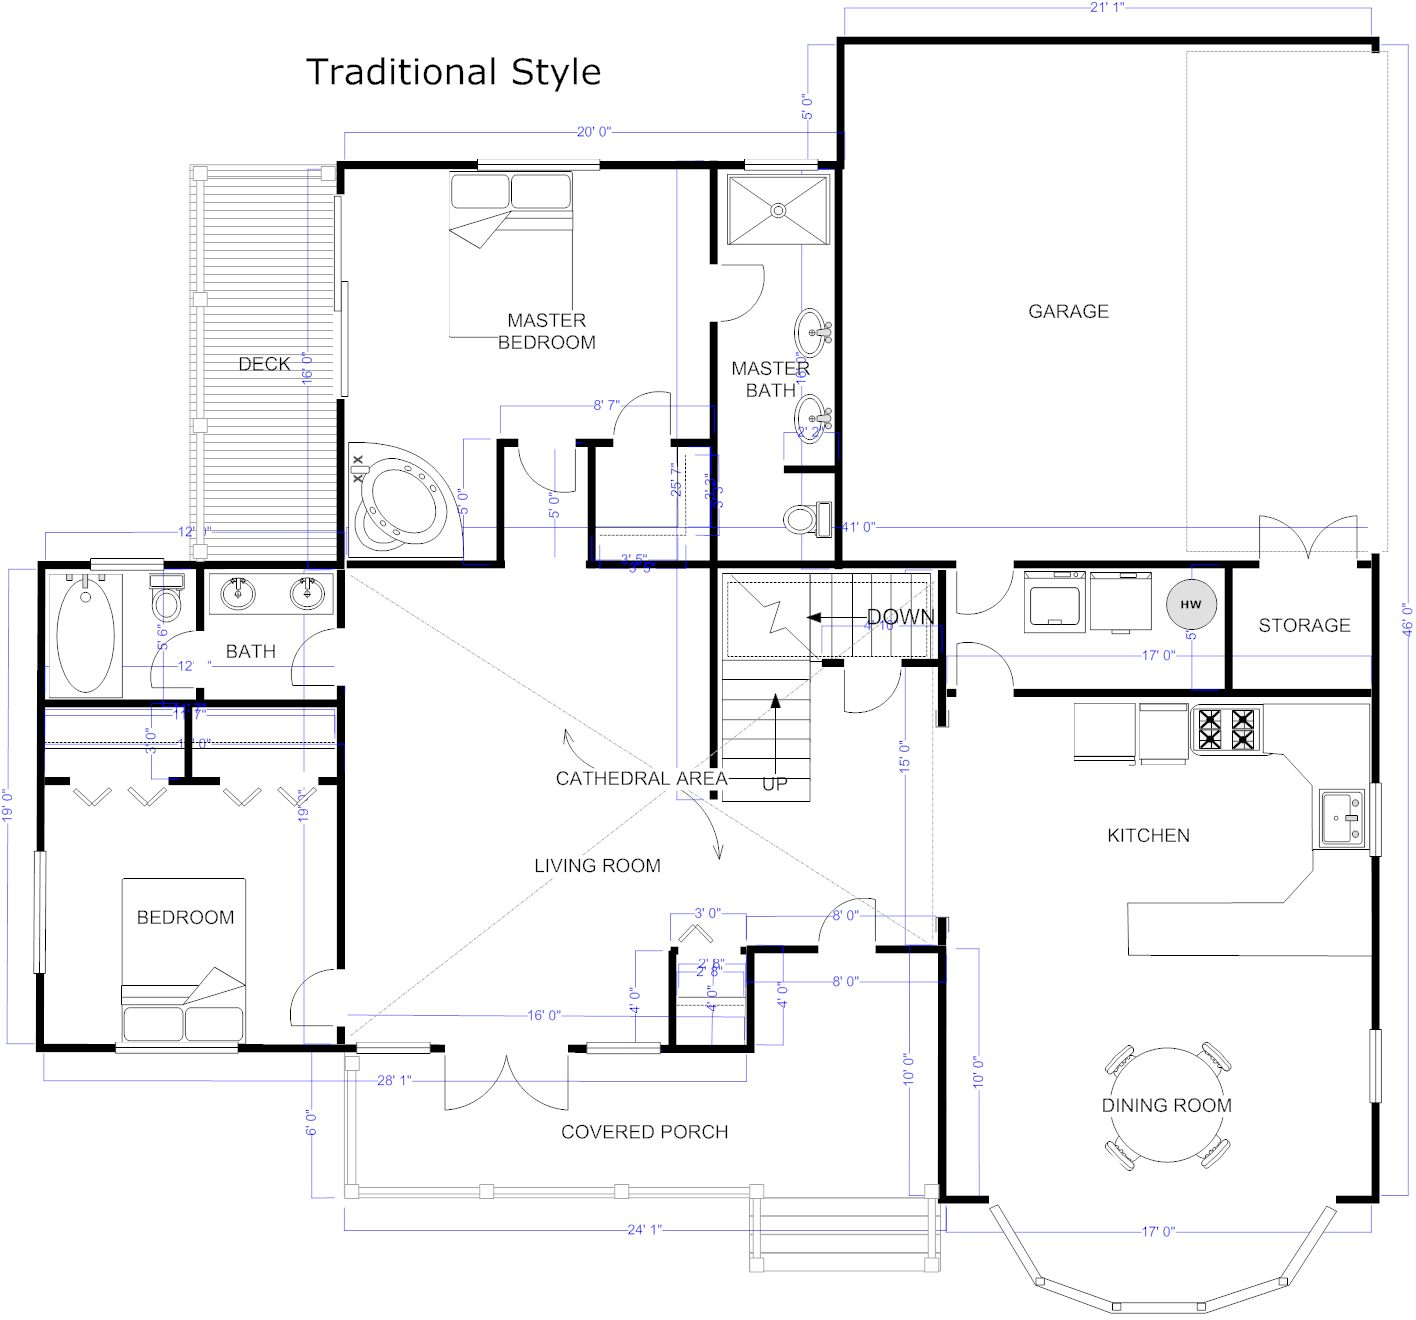 Architecture Software Free Download Online App: easiest home design software